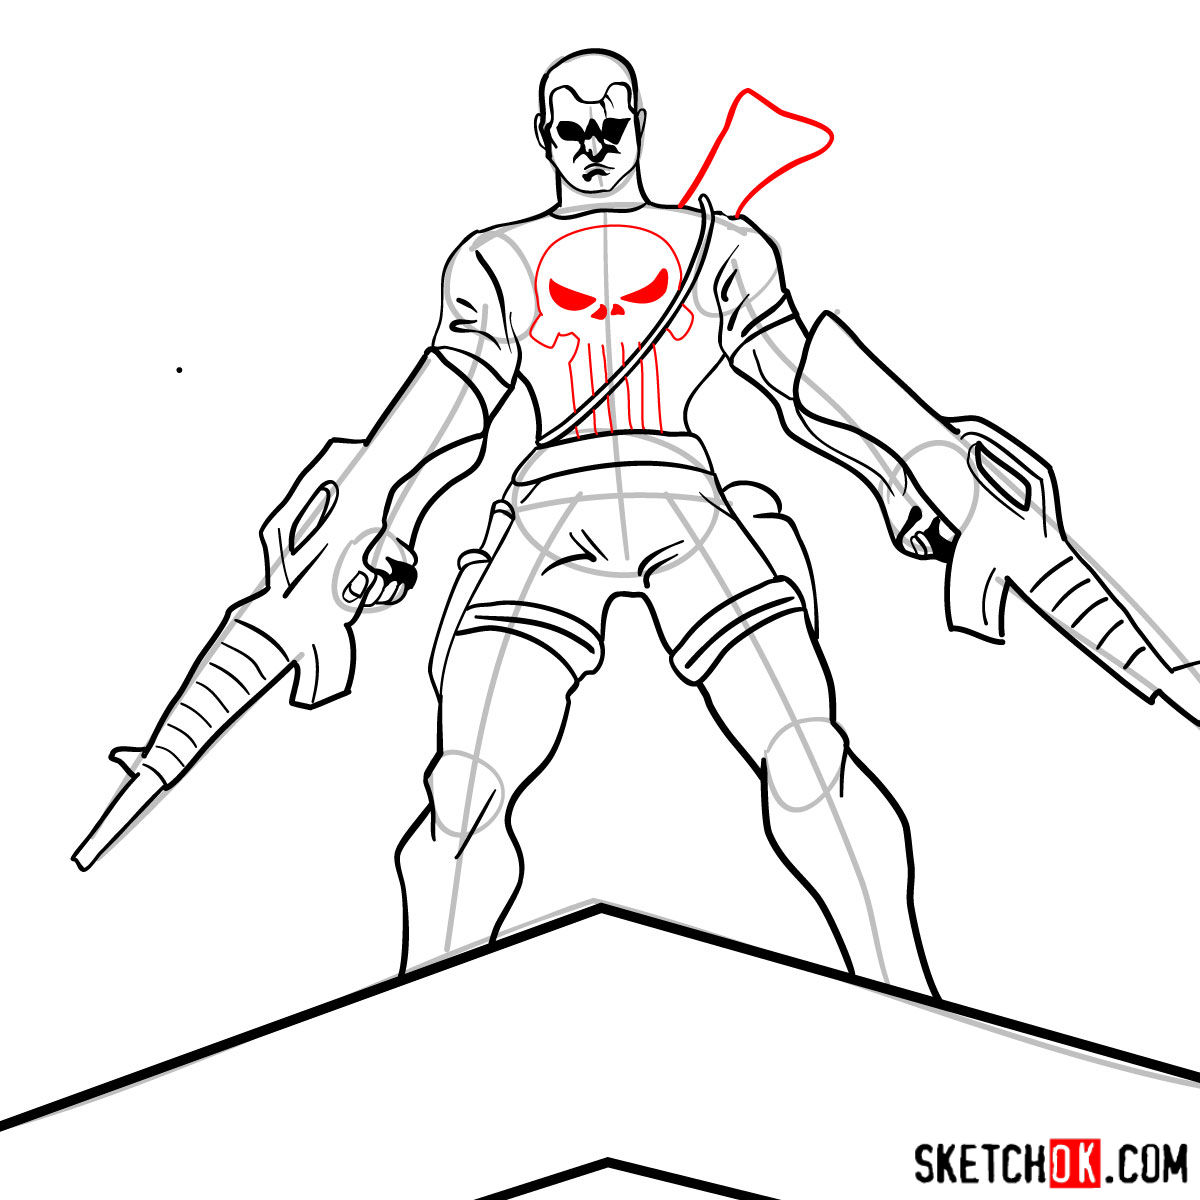 How to draw The Punisher with two submachine guns - step 11